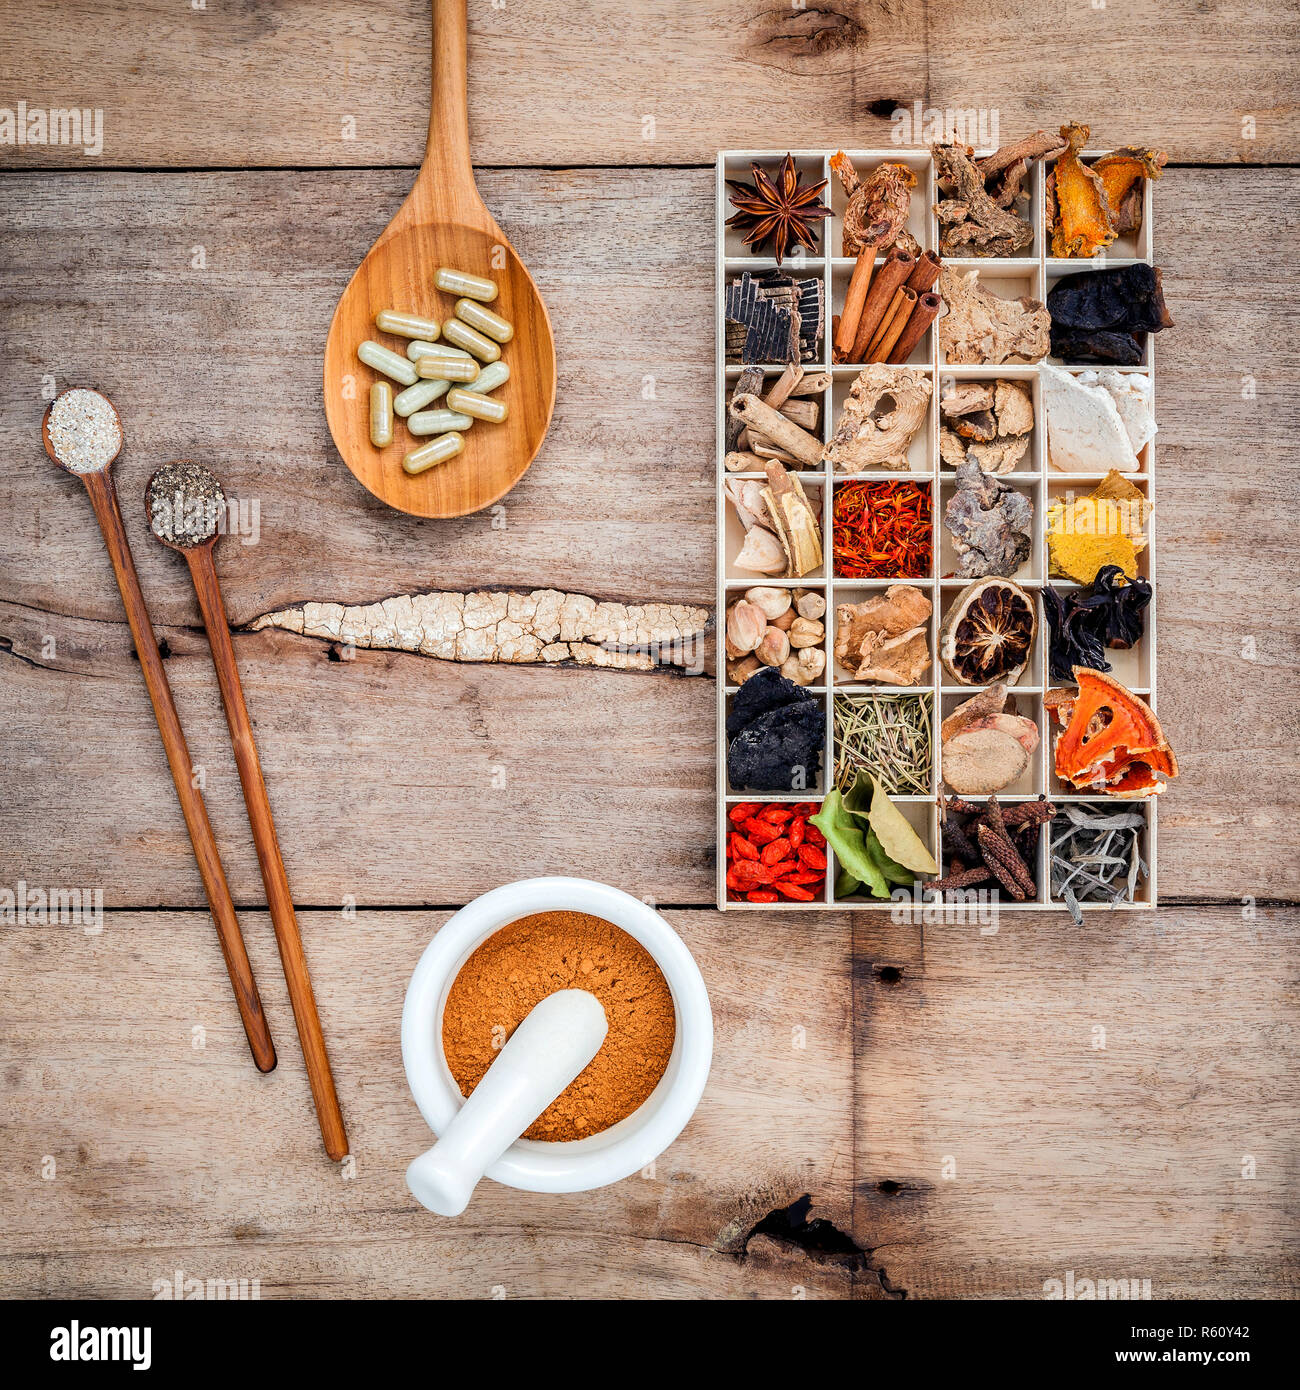 Alternative health care dried various Chinese herbs in wooden box and herbs capsule in wooden spoon with mortar on old wooden background. - Stock Image